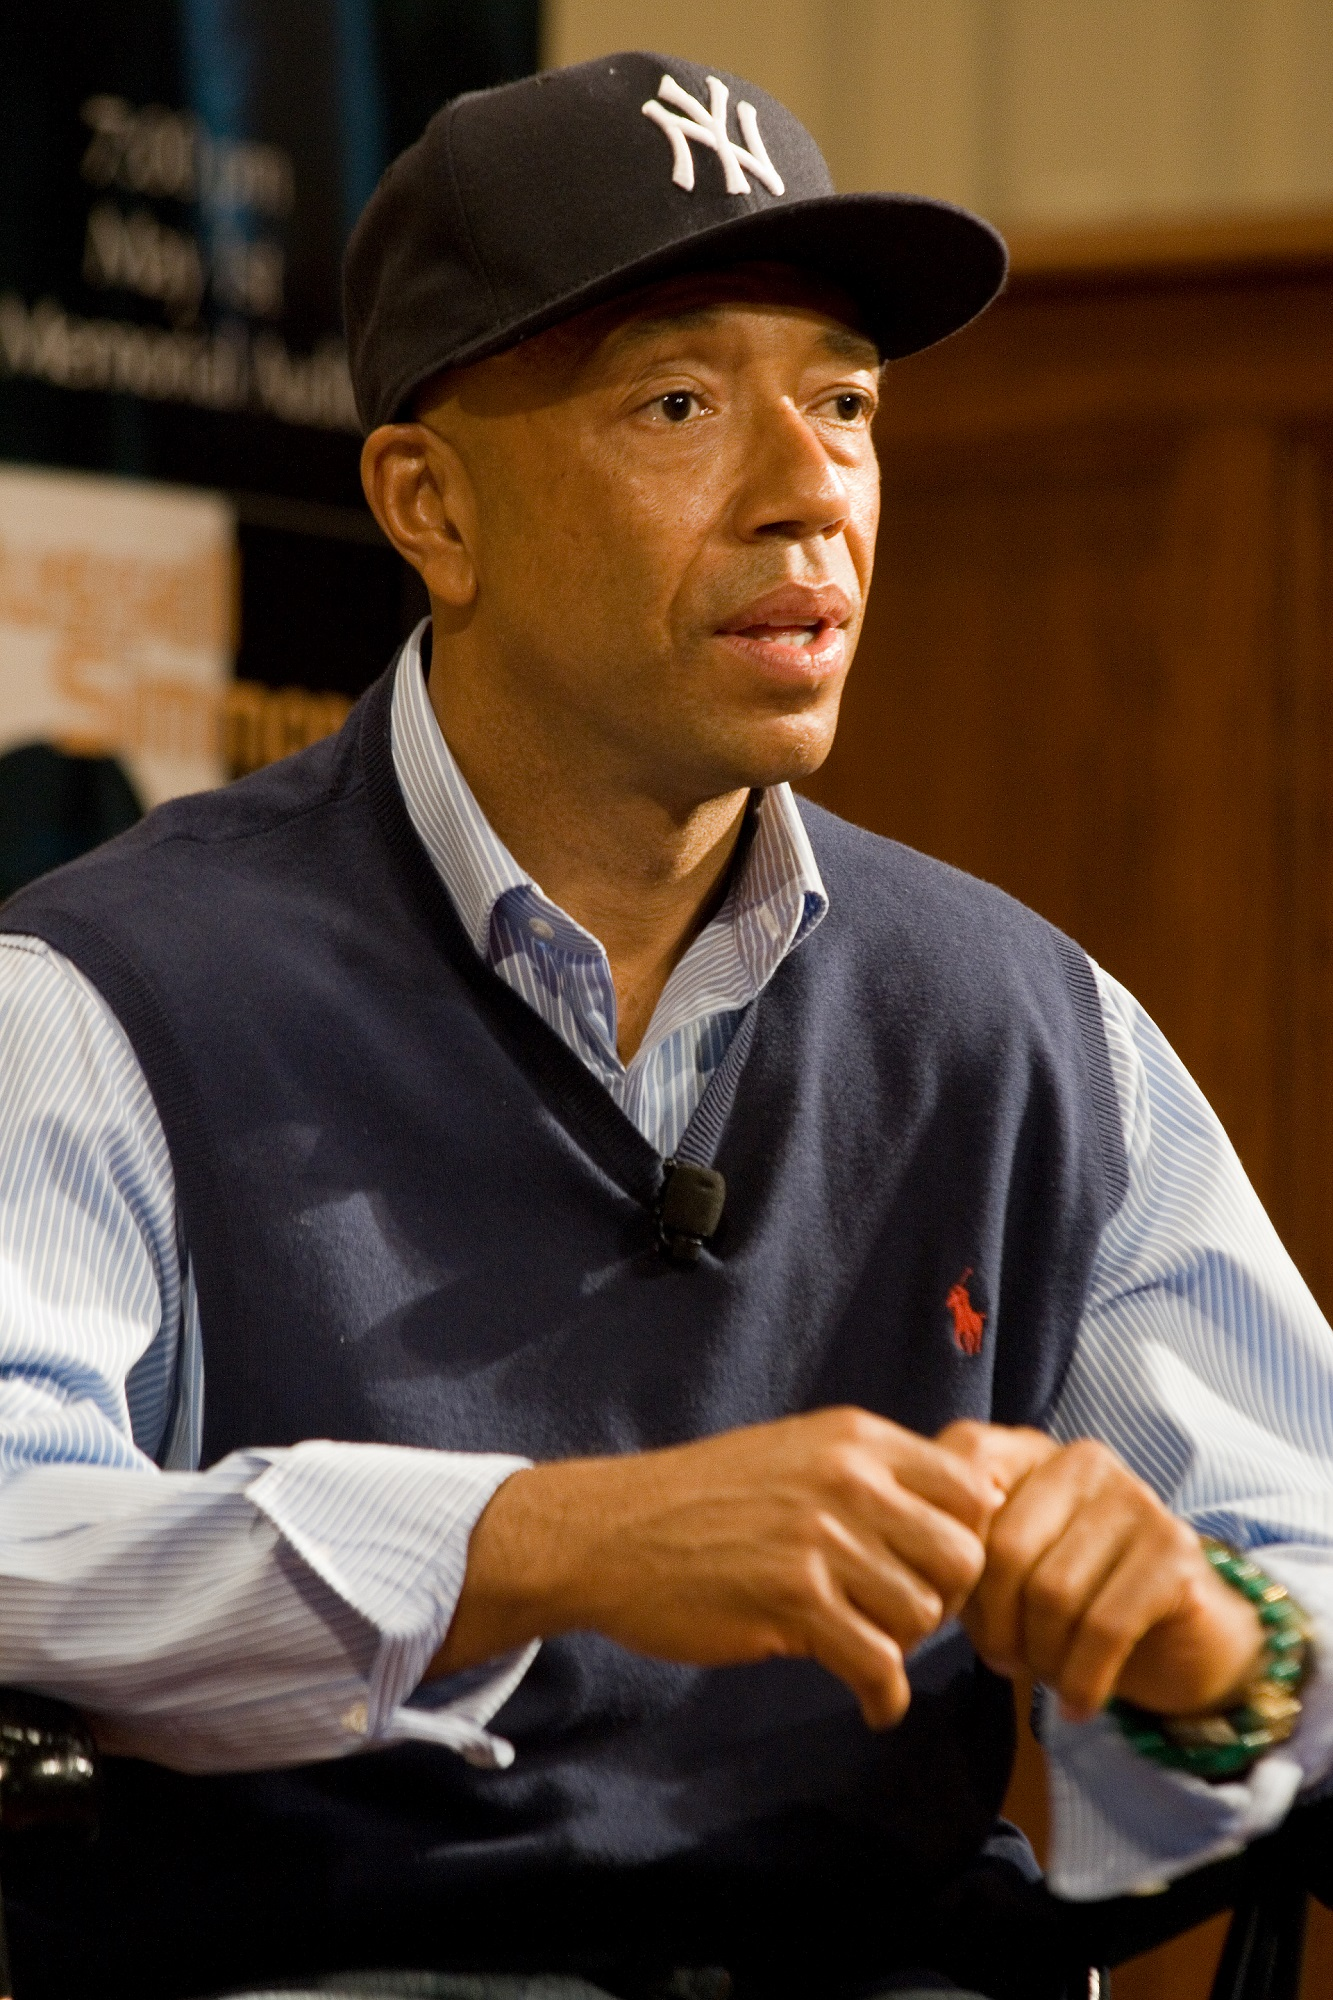 Russell Simmons is a vegan